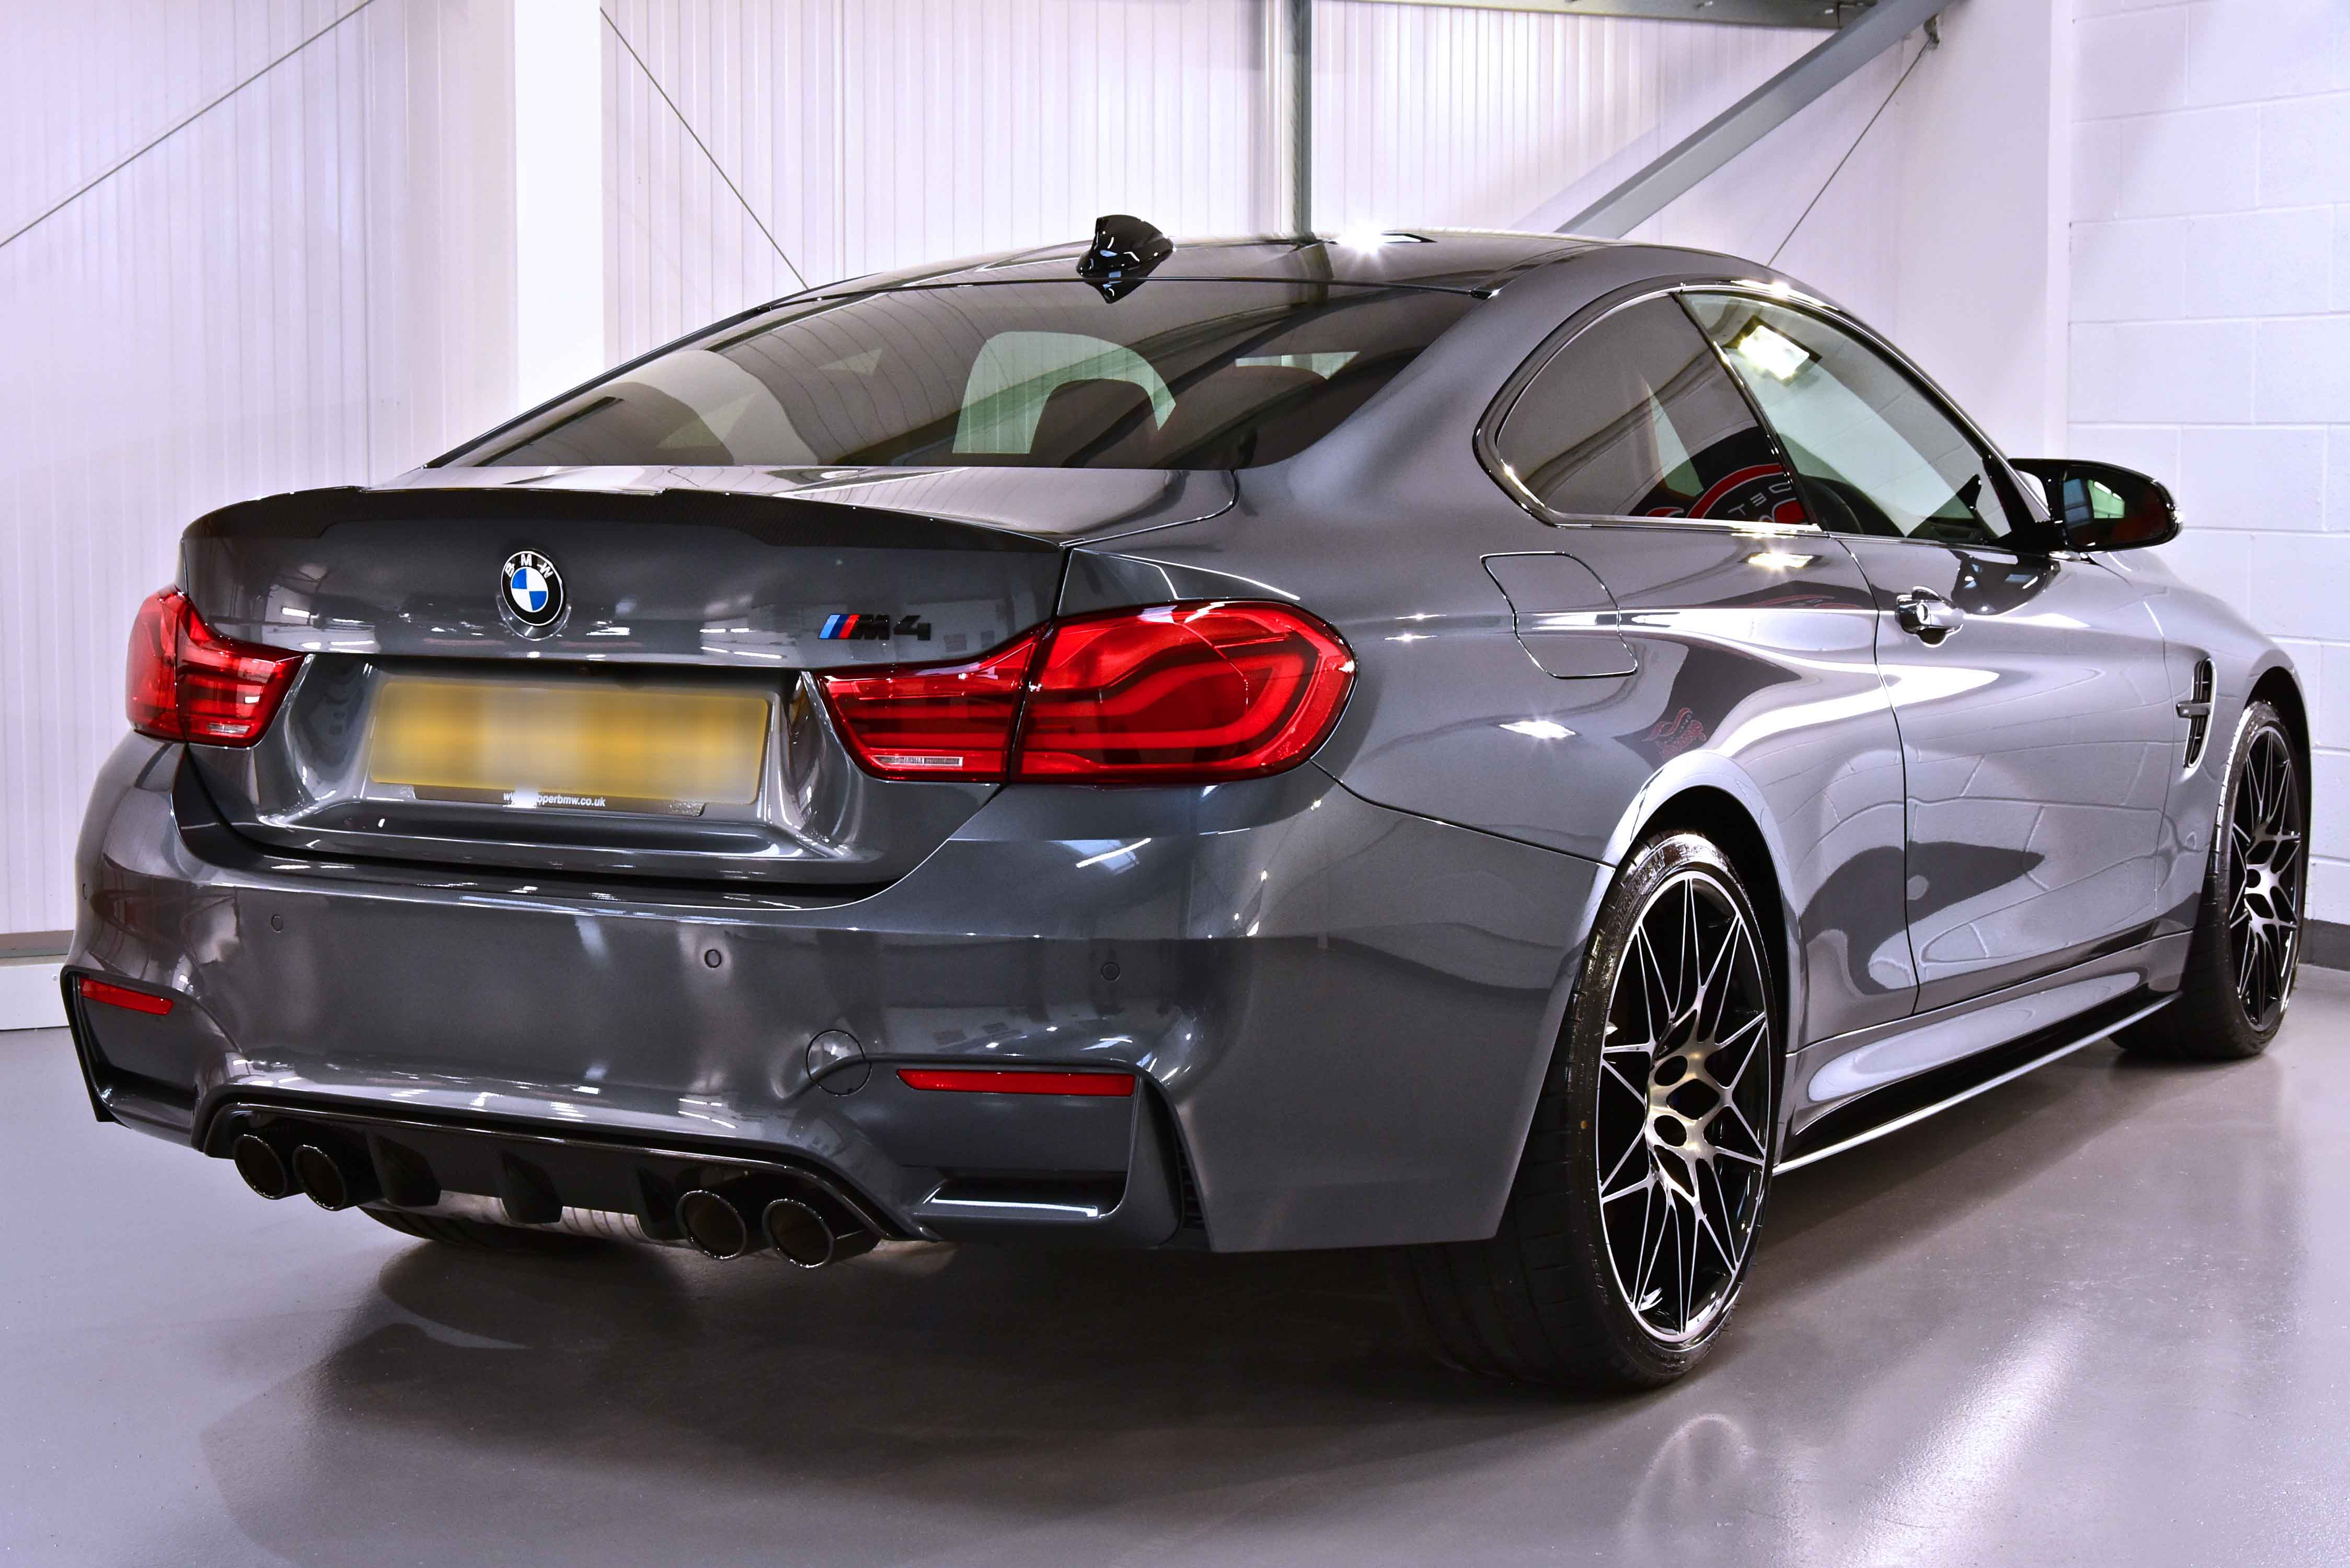 BMW M4 New Car Enhancement and Protection Detail with Gtechniq Crystal Serum Ultra and EXOv4